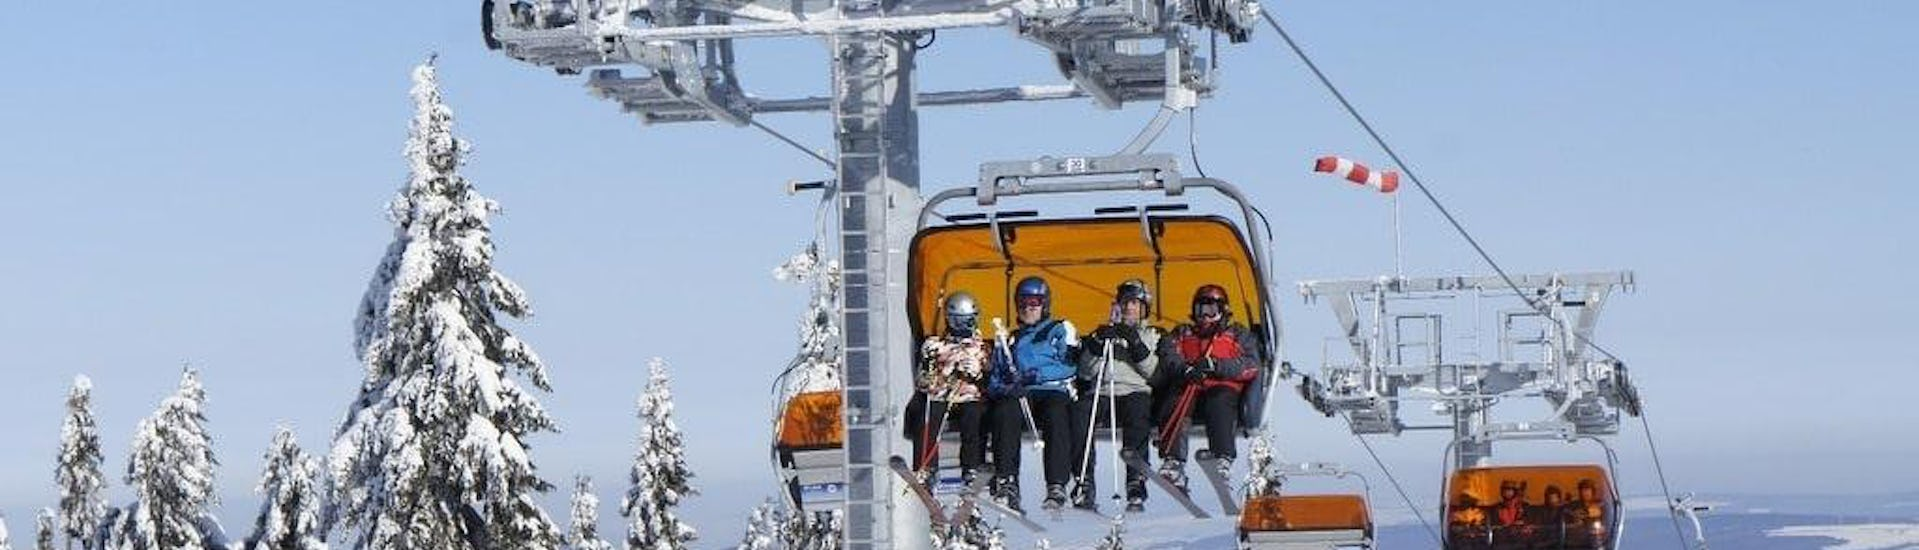 Ski Private Group for Adults - Morning